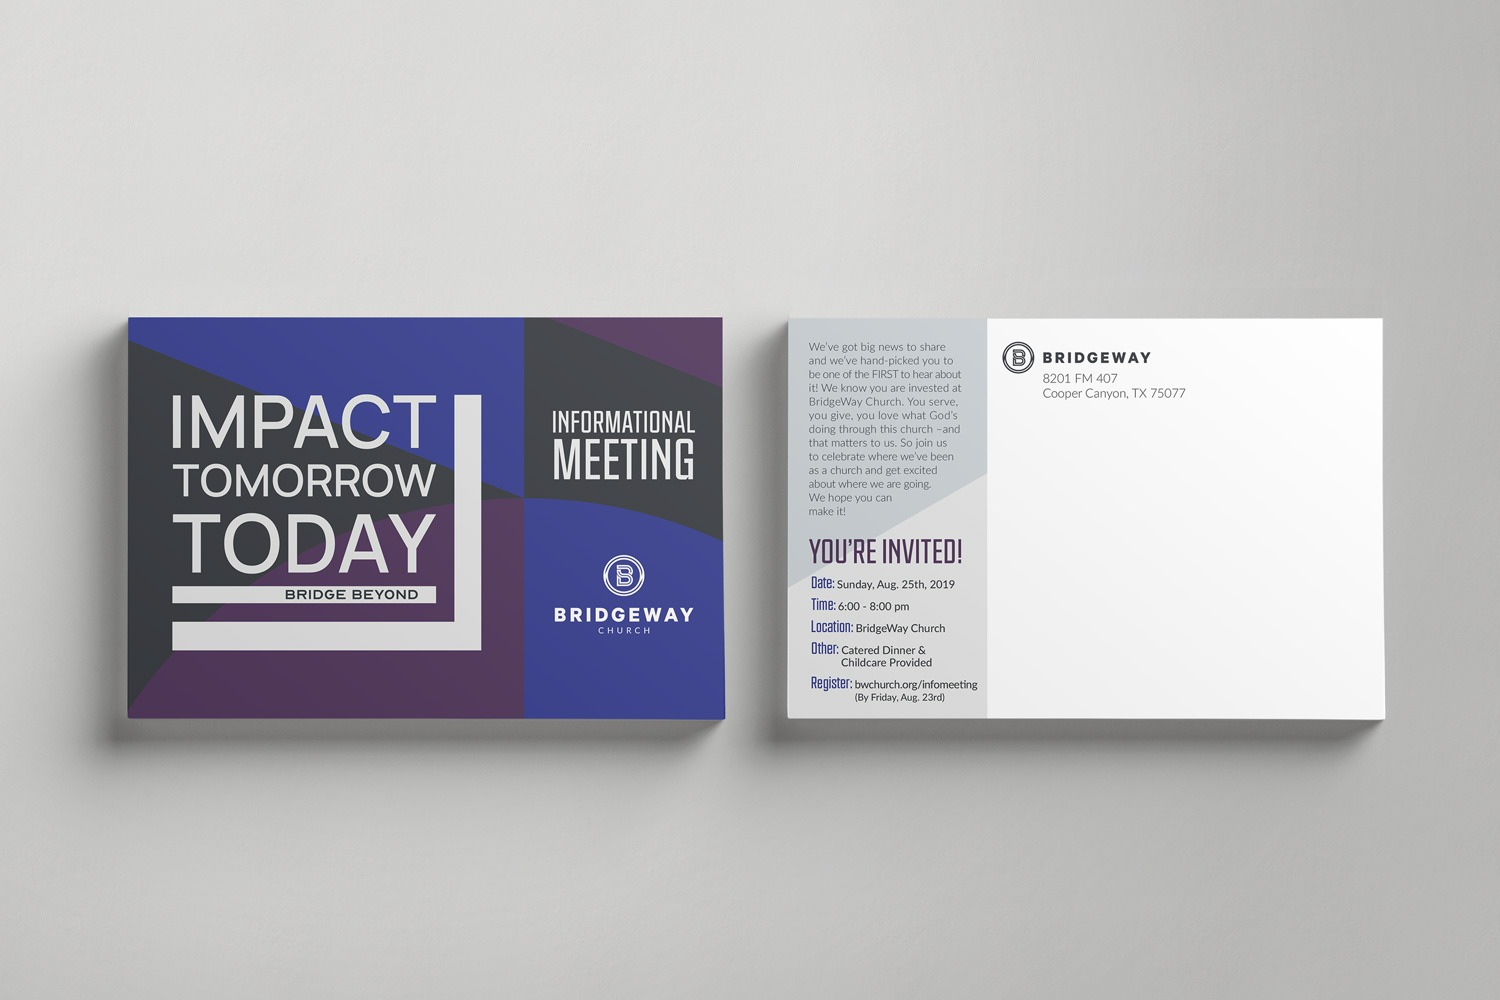 Church Capital Campaign 4 x 6 in. Postcard Direct Mail Ideas and Examples by Abstract Union in Lincoln, NE